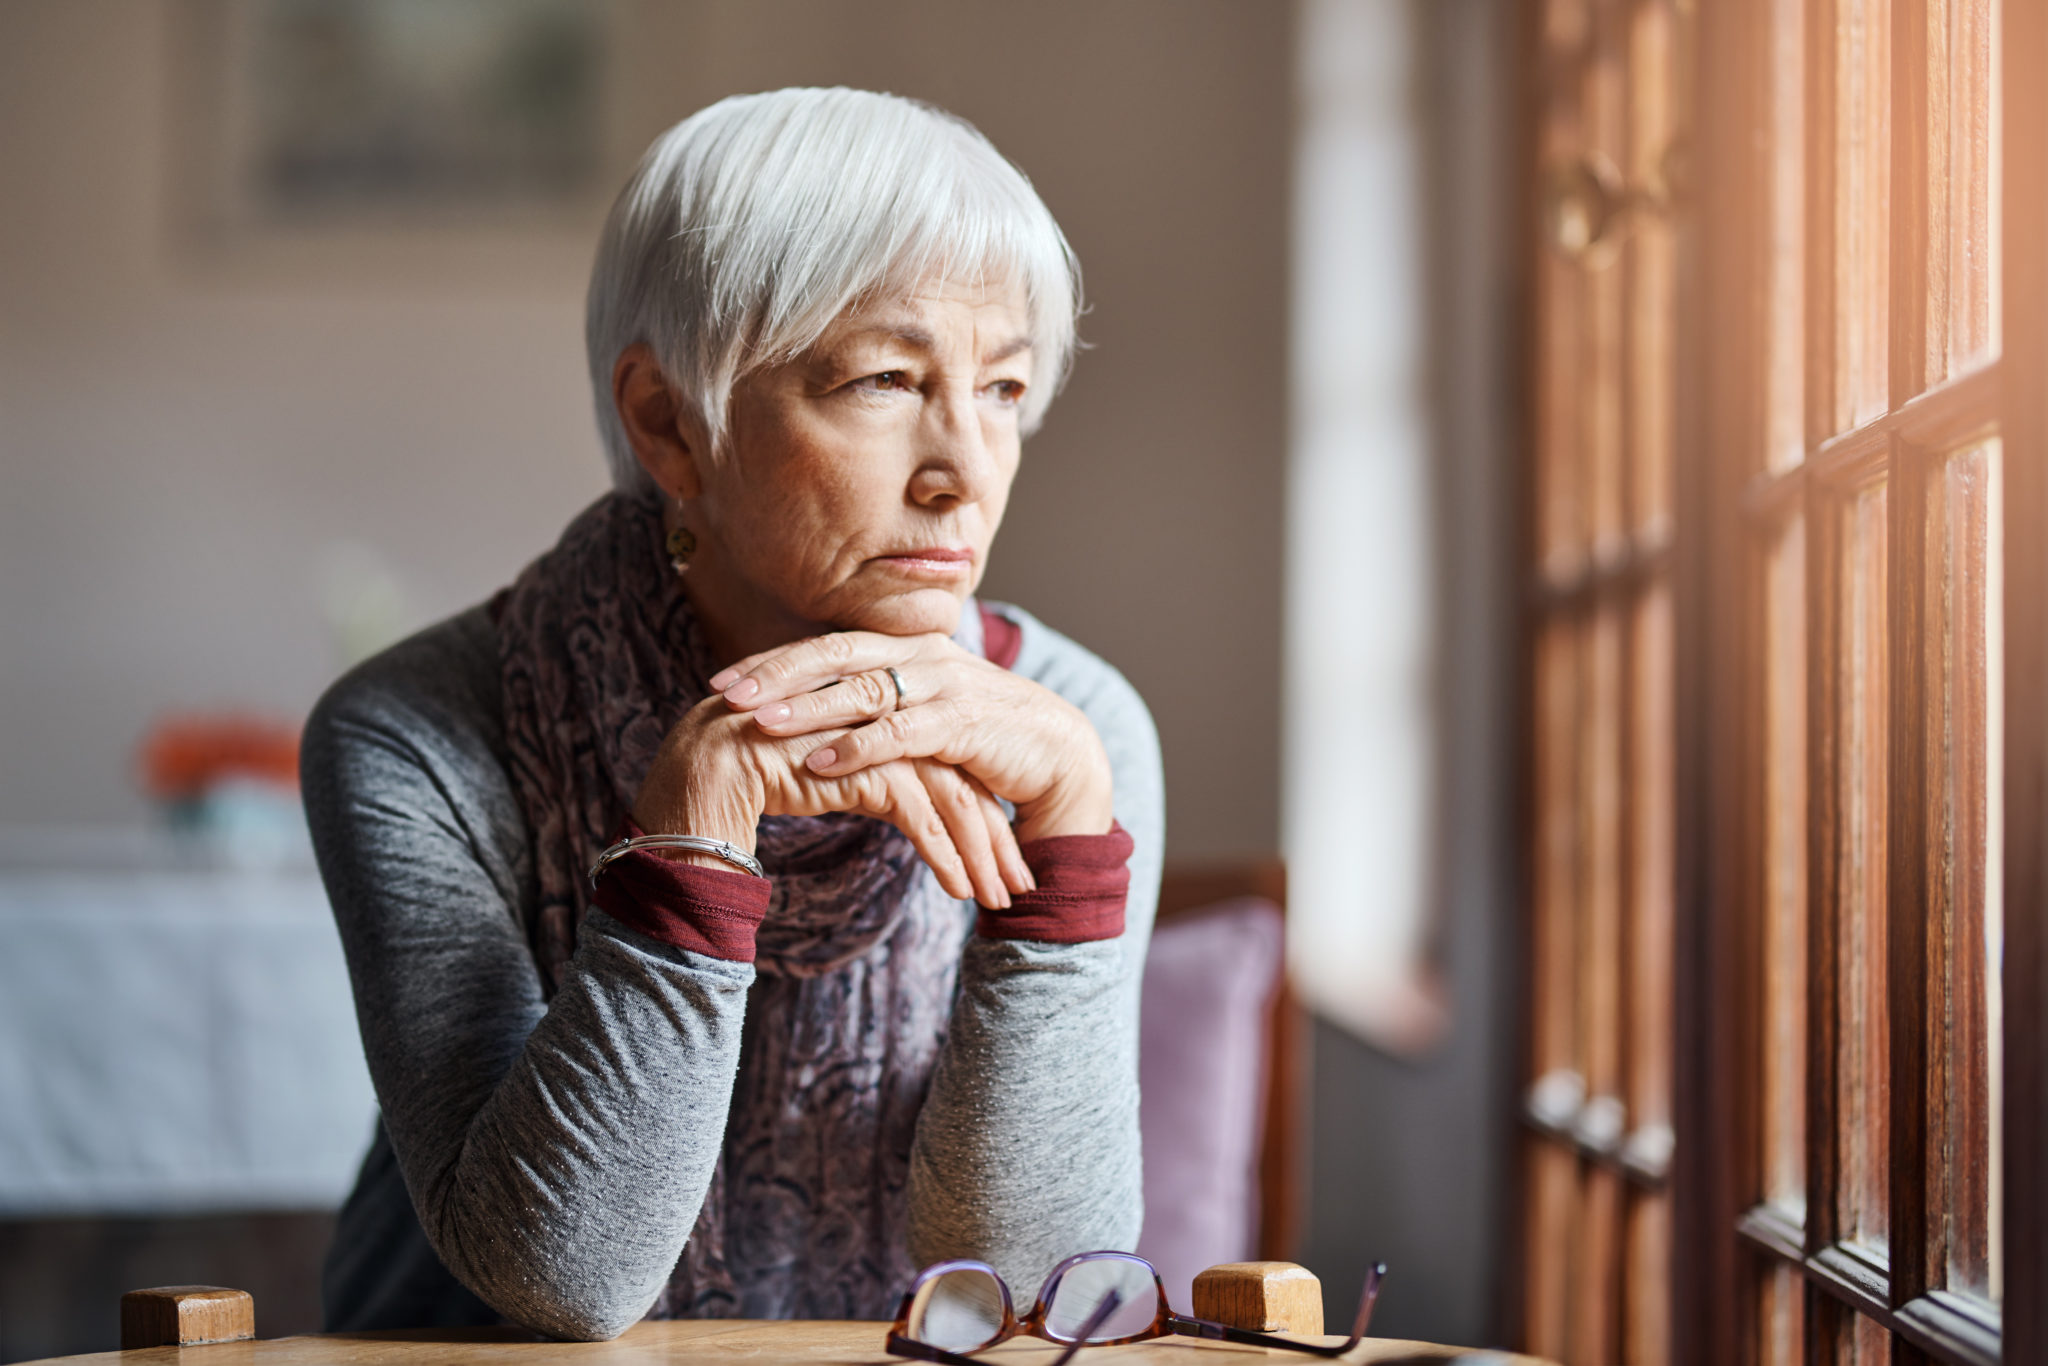 Shot of a senior woman looking thoughtful in a retirement home